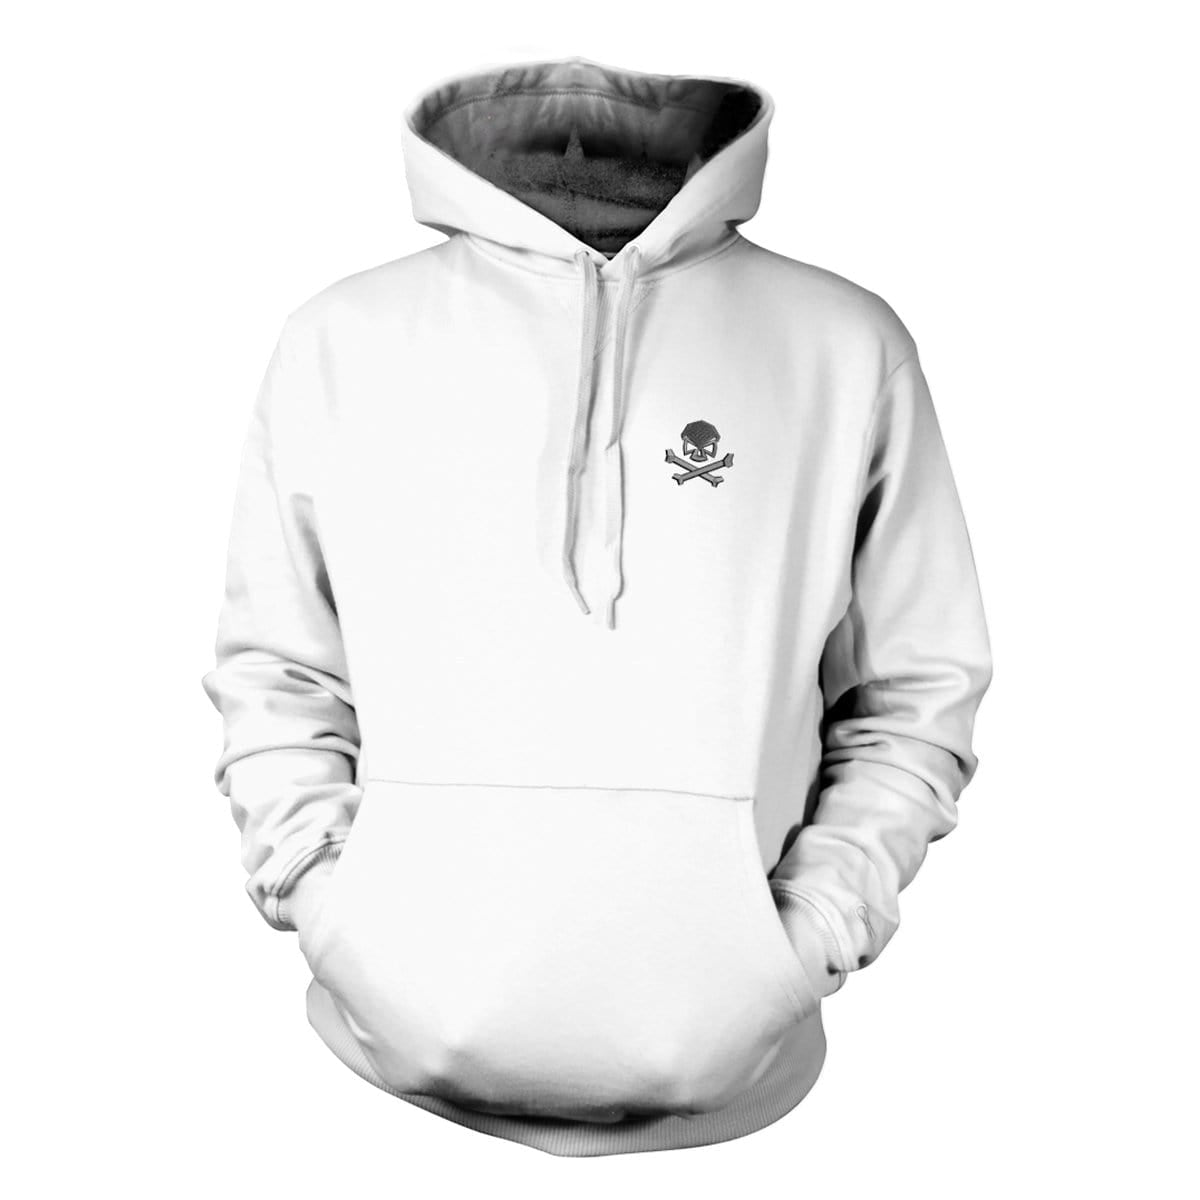 Skull & Bones Hoodie (Embroidered) - White/Black - Hoodies - Pipe Hitters Union